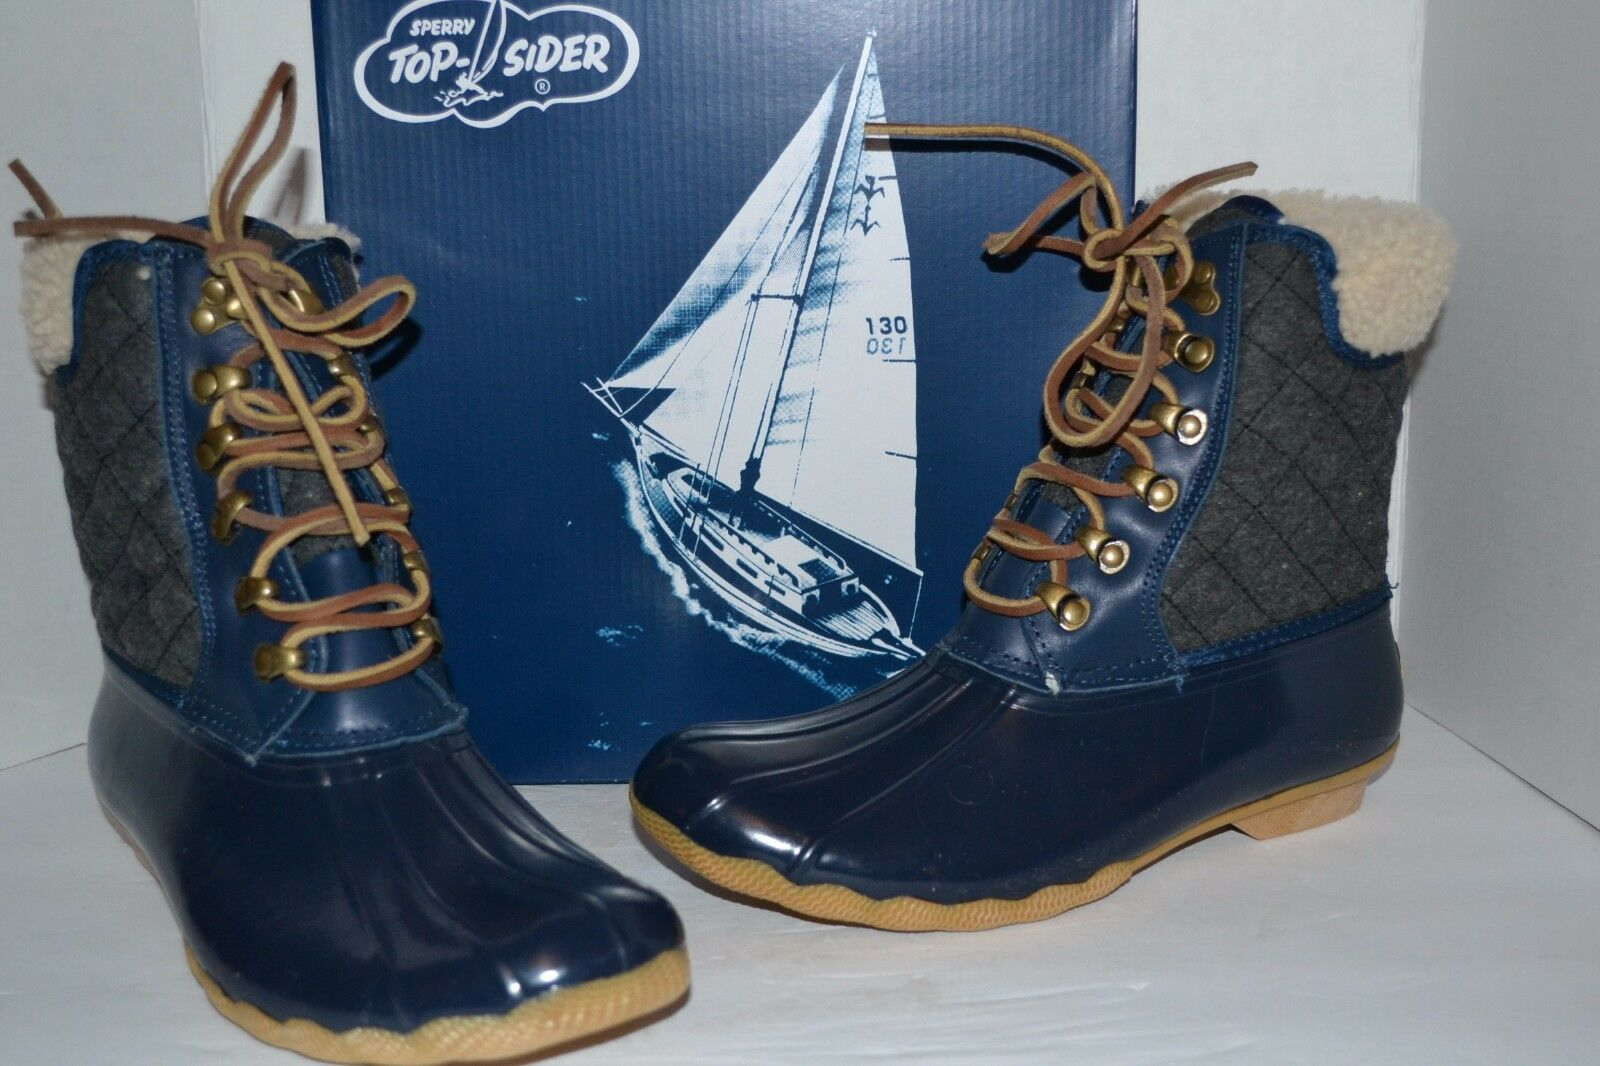 56474134a213f Sperry for J Crew Wool Lined Shearwater Navy charcoal Duck Boot Snow ...